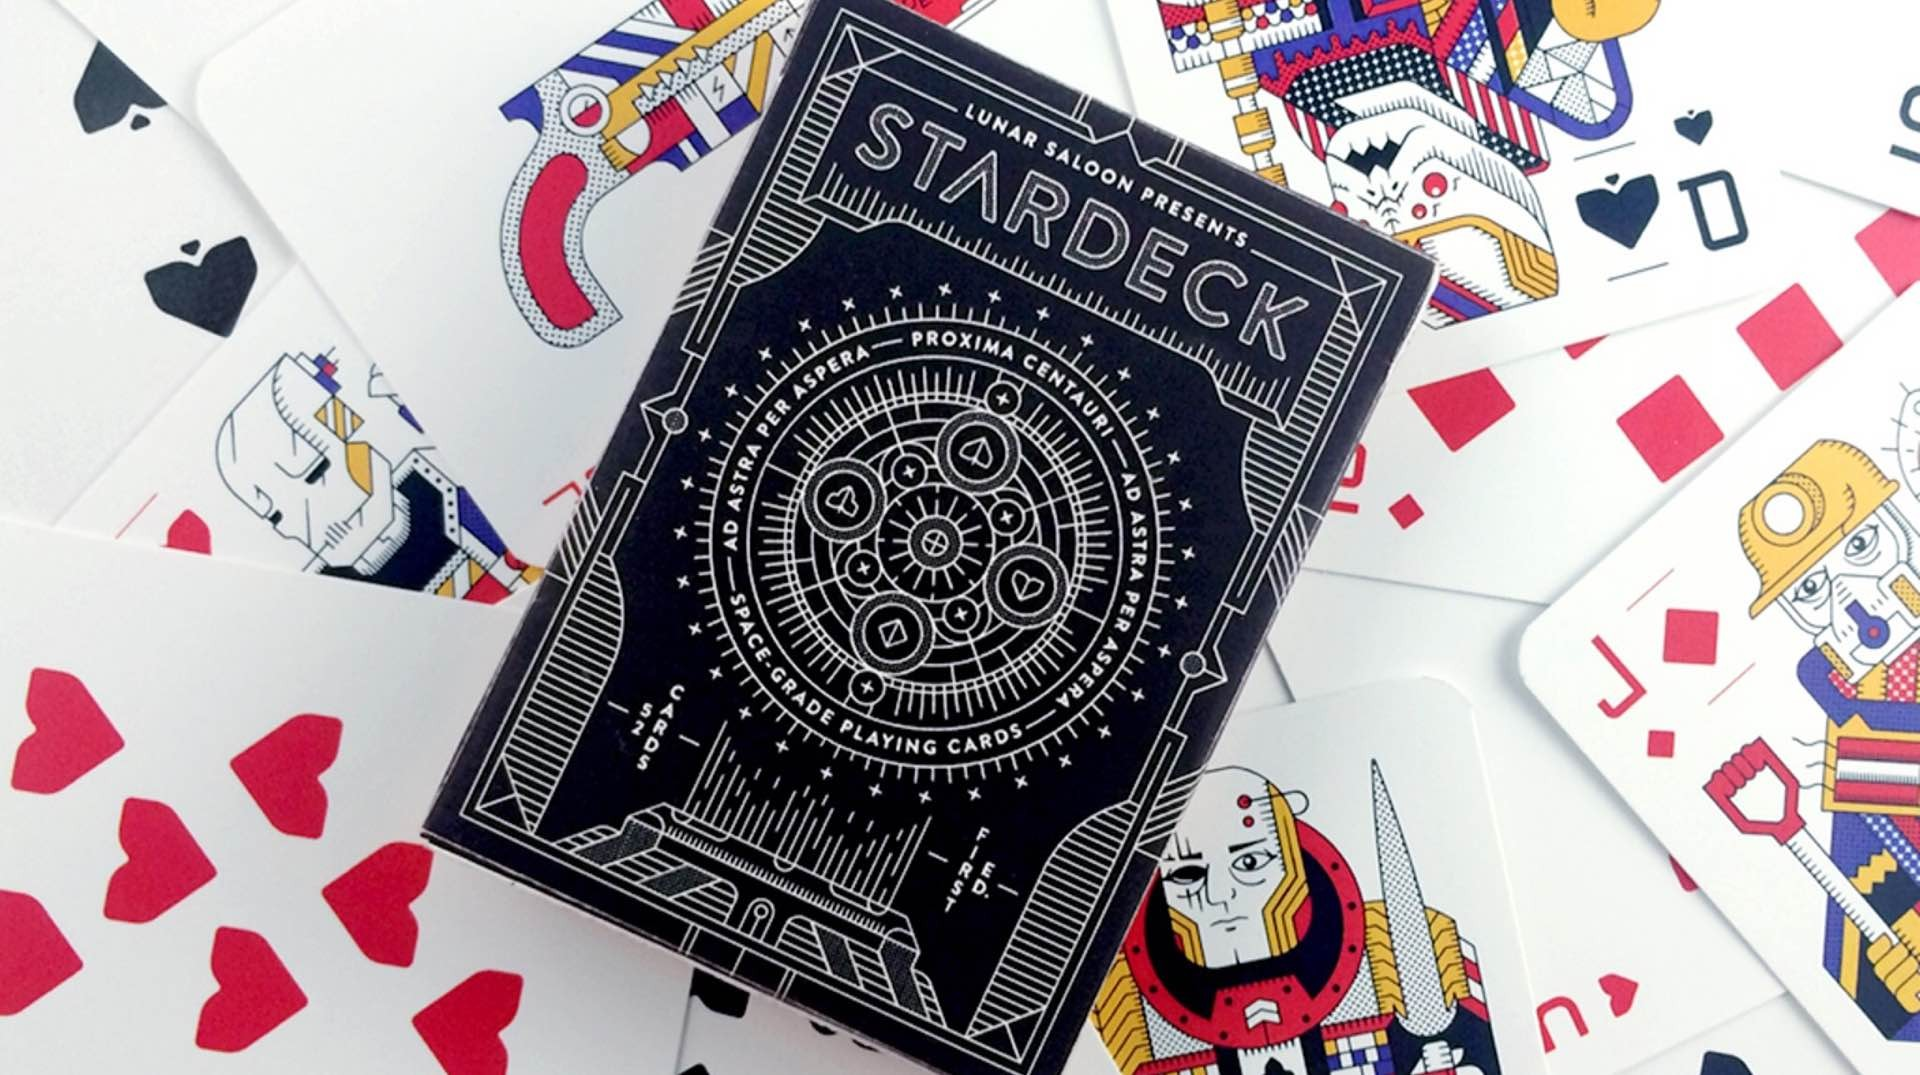 Lunar Saloon's STARDECK playing cards. ($15)